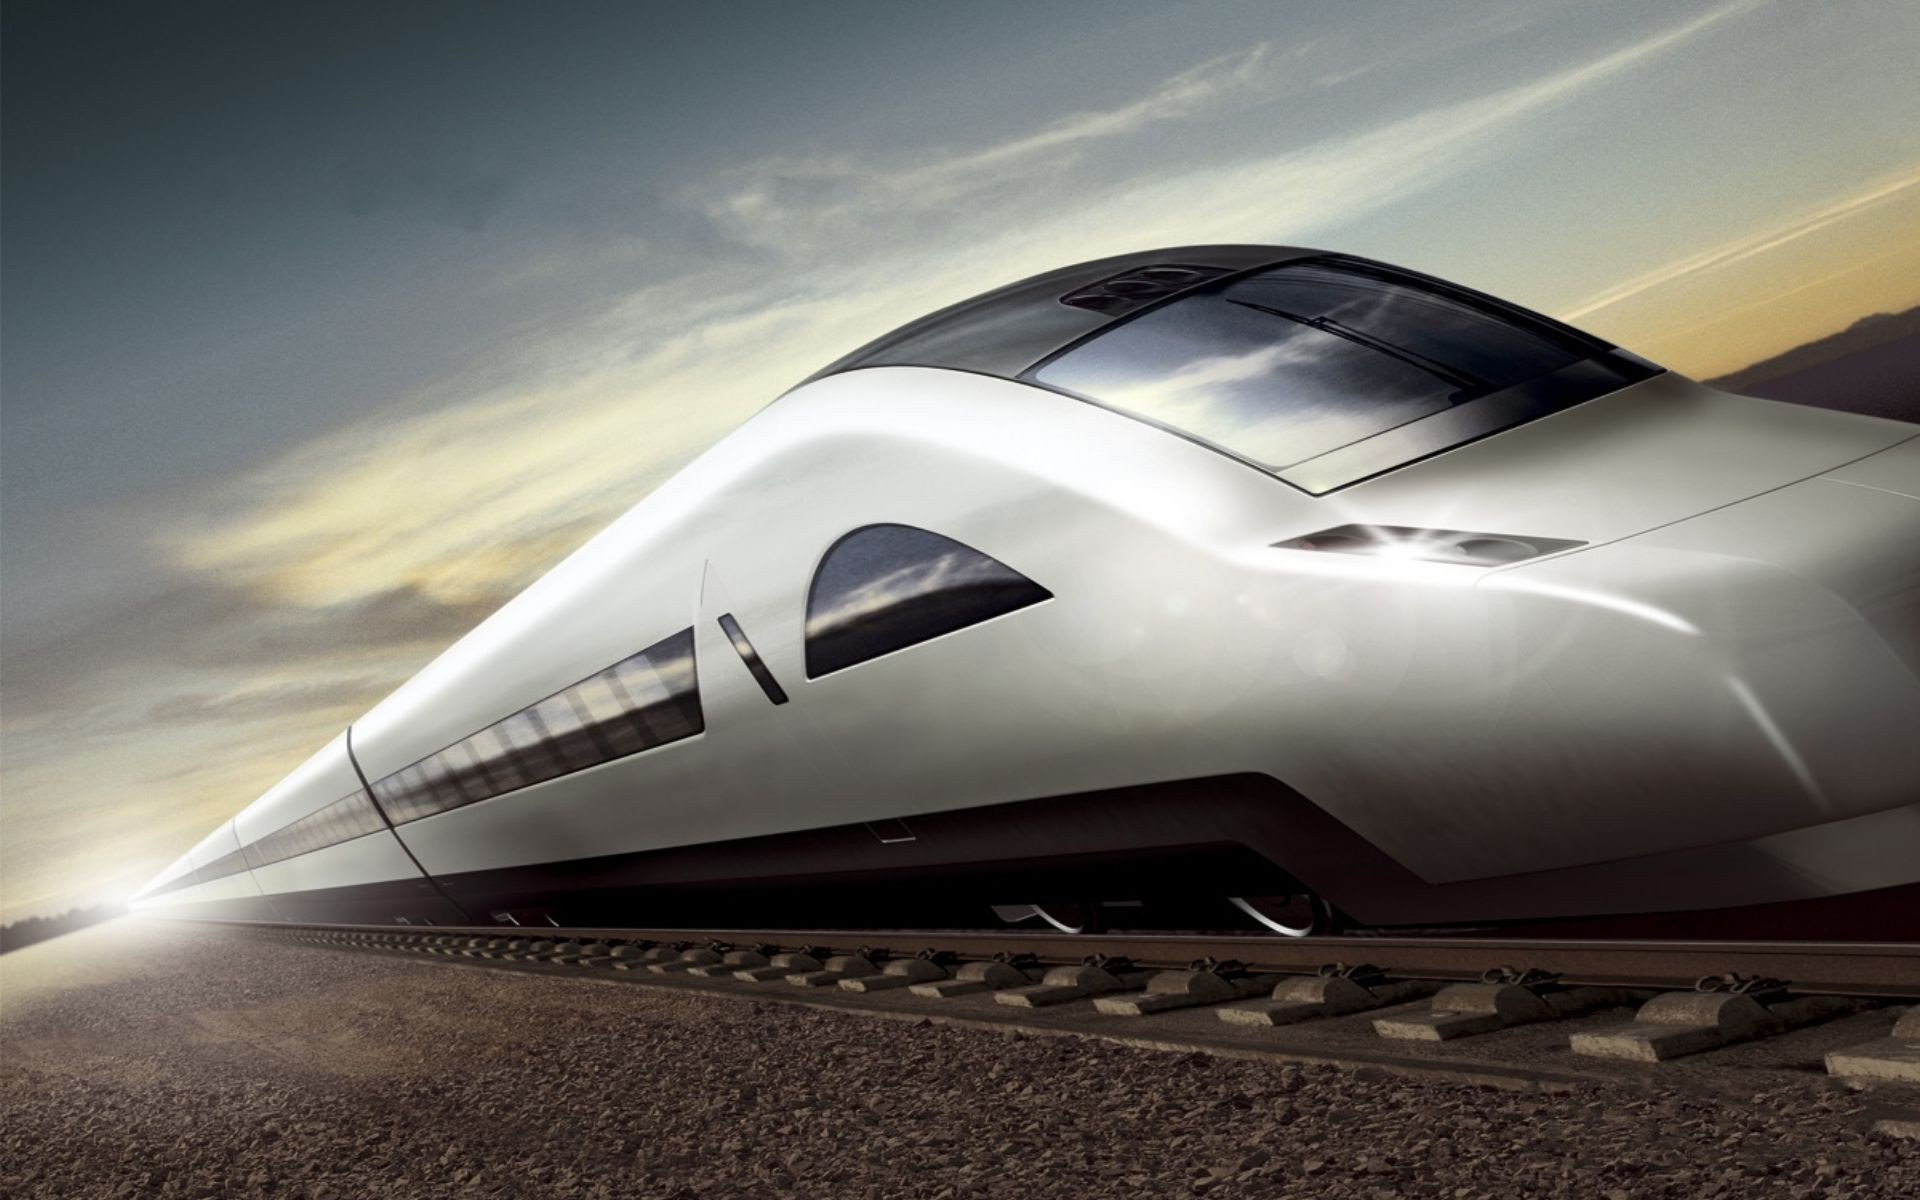 Fast Sports Cars Wallpapers Bullet Train Artwork Wallpapers Bullet Train Artwork